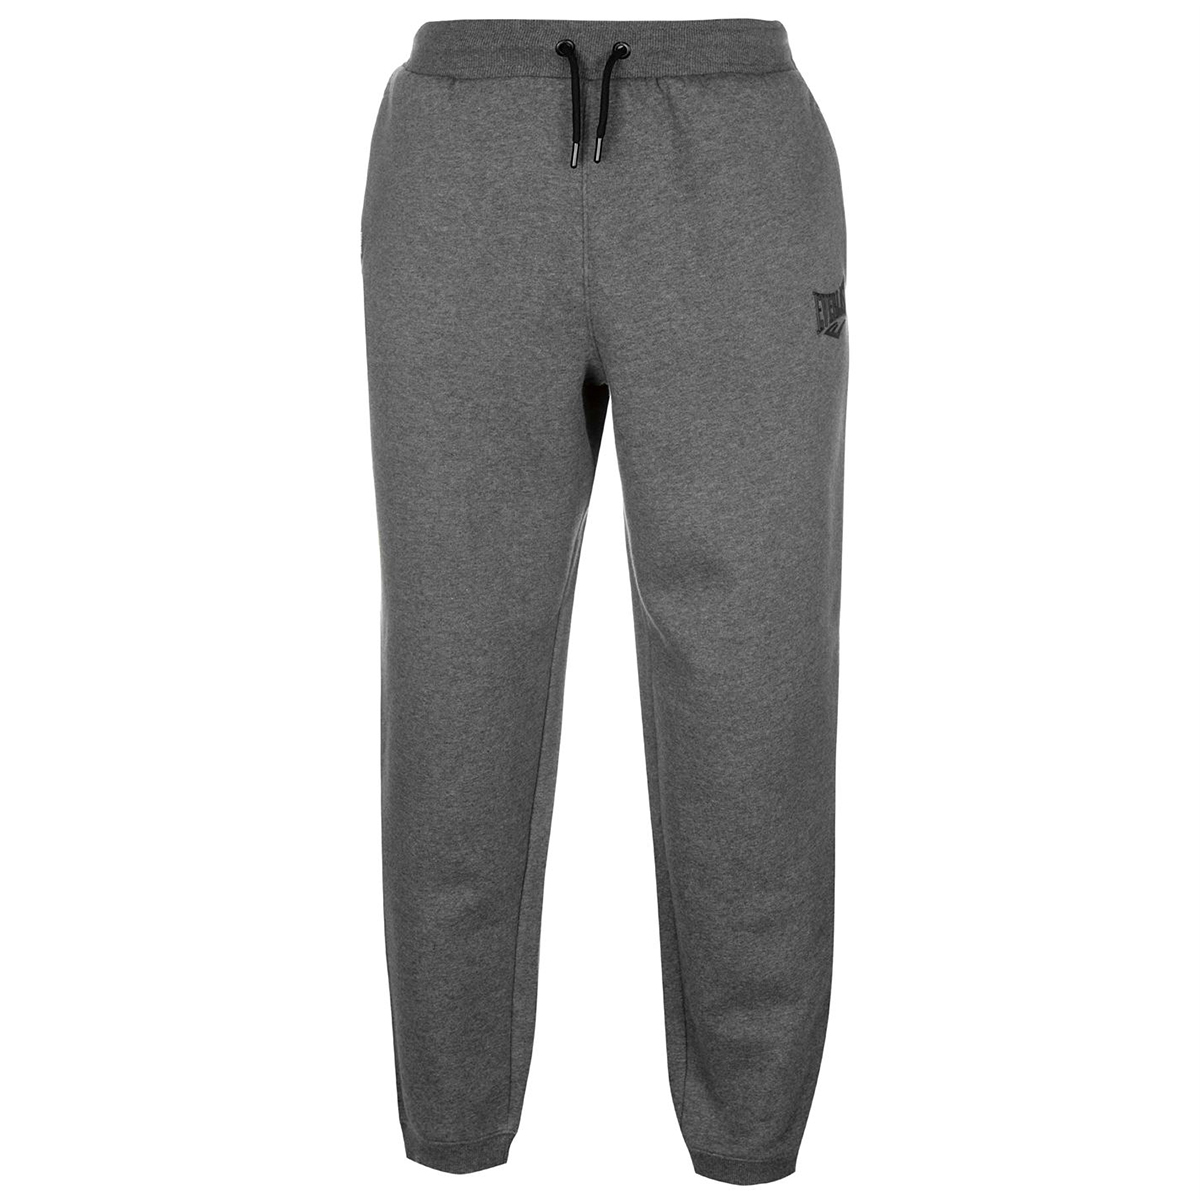 Everlast Men's Jogging Pants - Black, 4XL